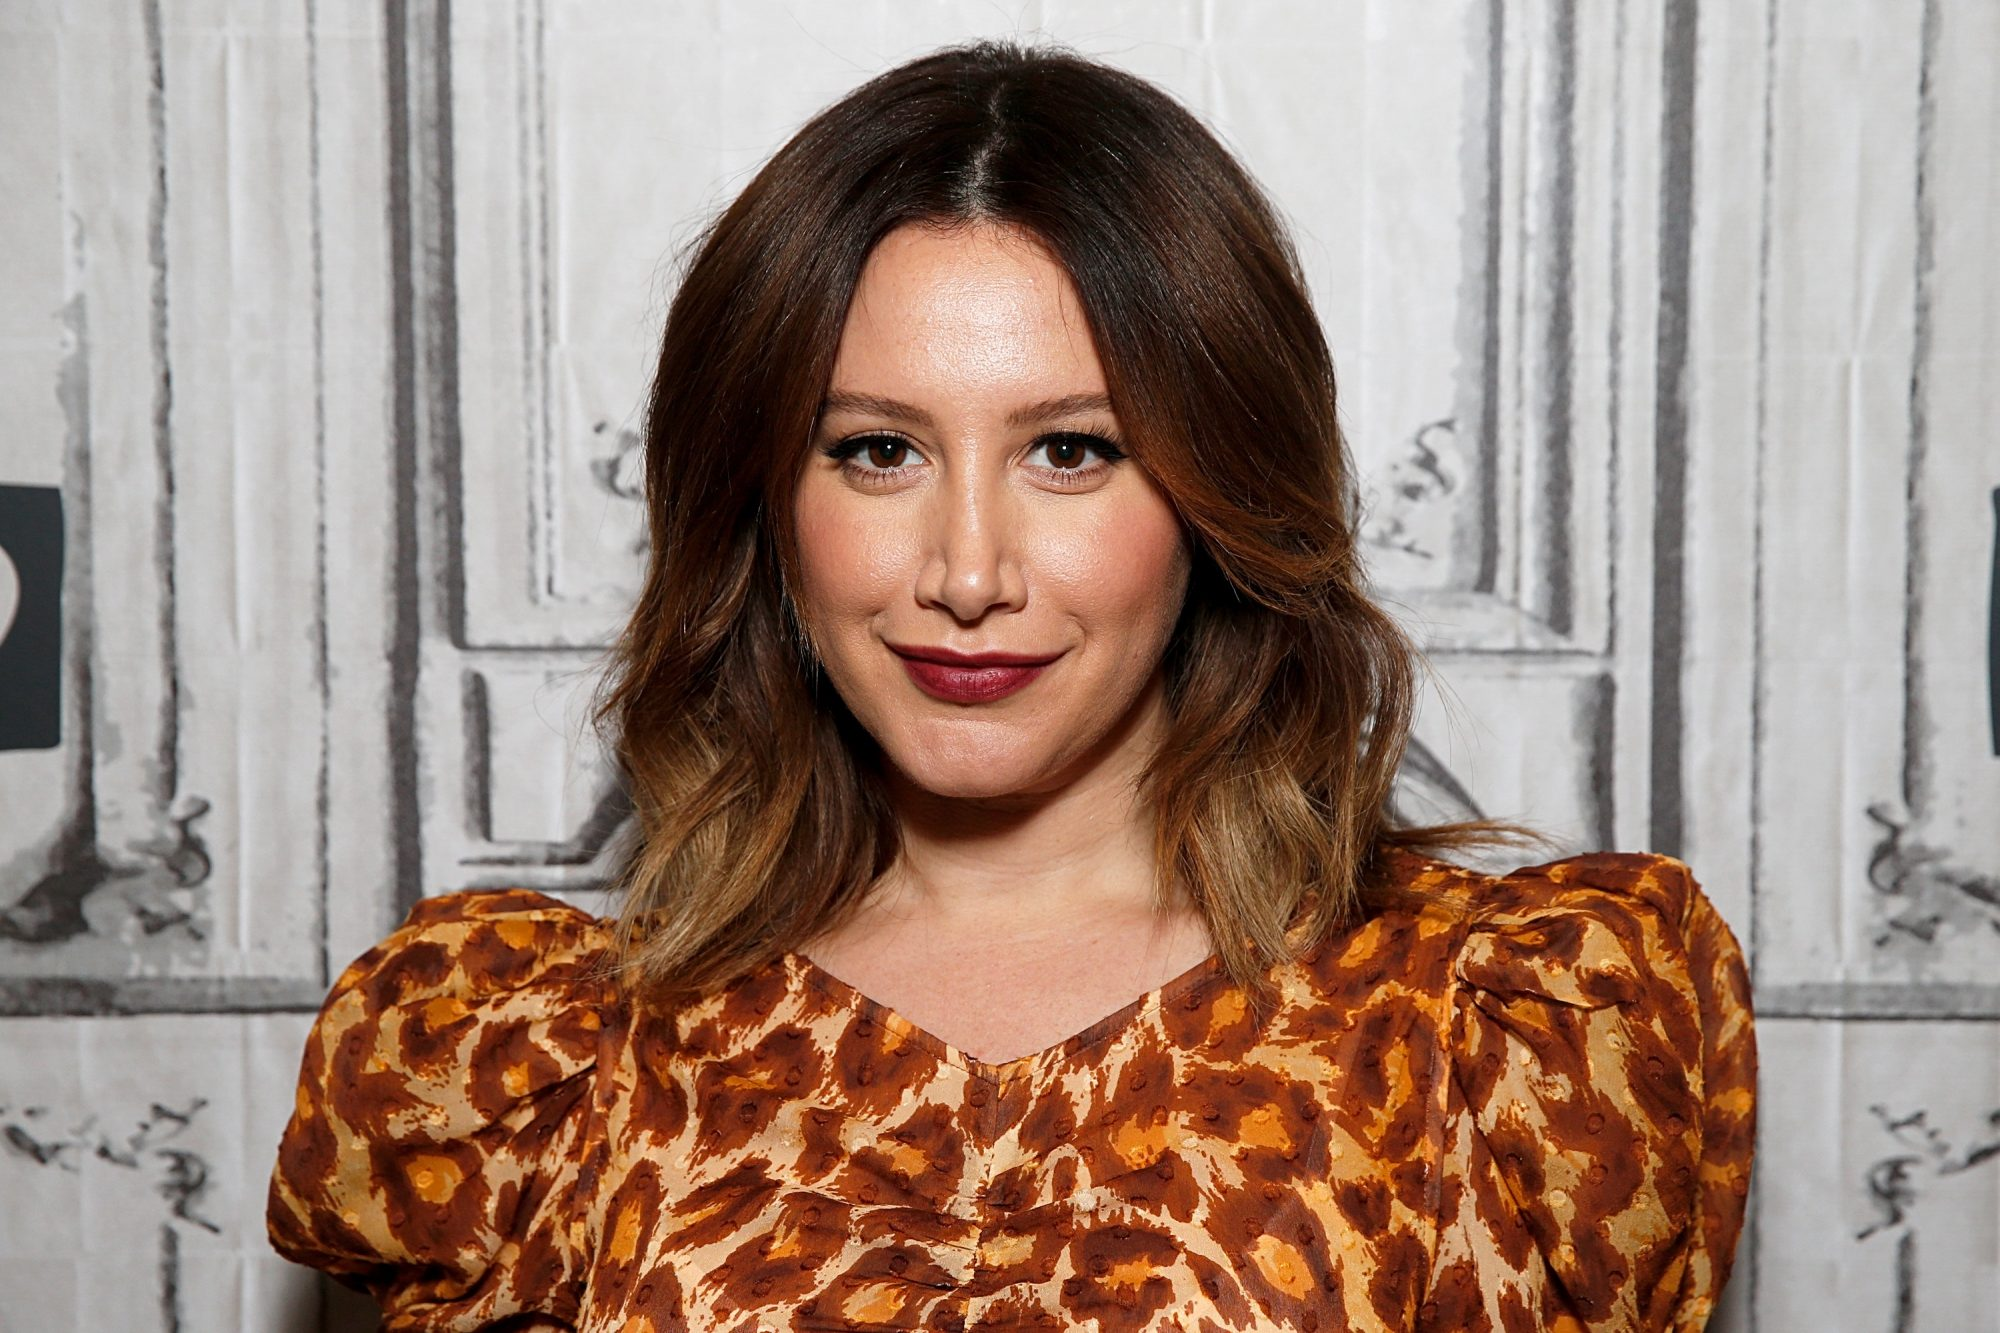 ashley tisdale pregnant pictures